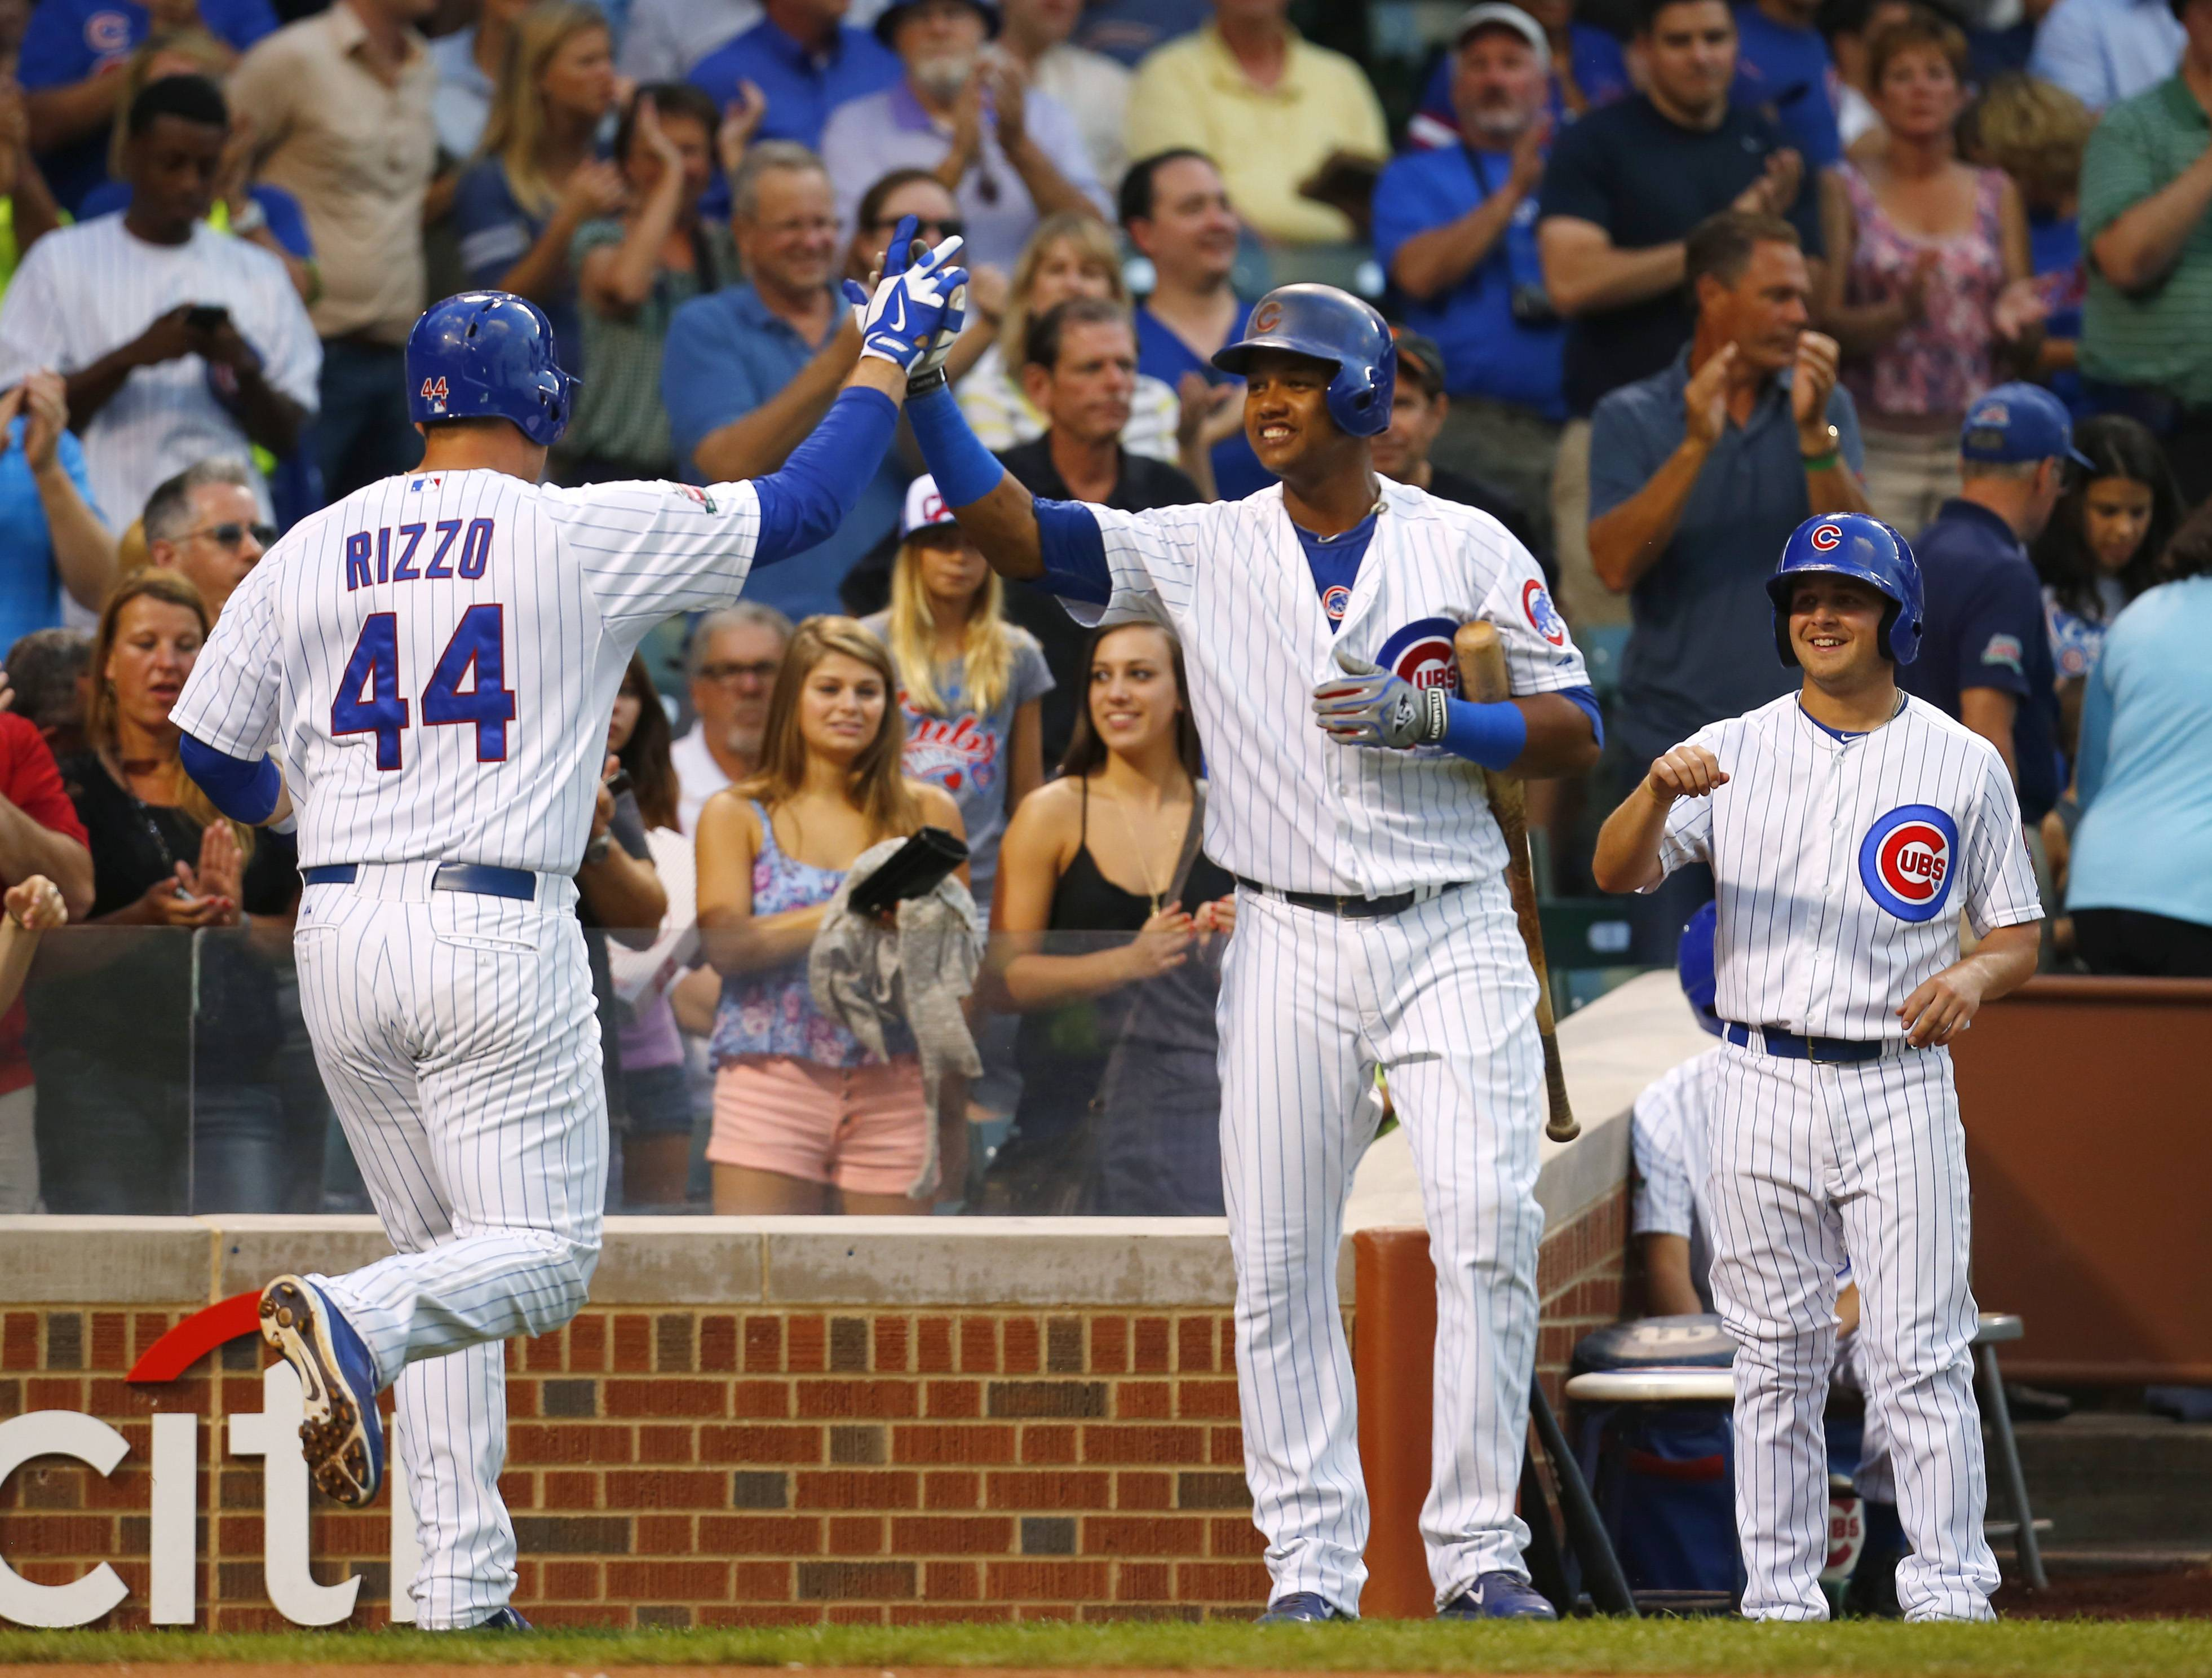 Chicago Cubs' Anthony Rizzo (44) is greeted by teammate Starlin Castro after his 2-run home run against the San Francisco Giants during the first inning.